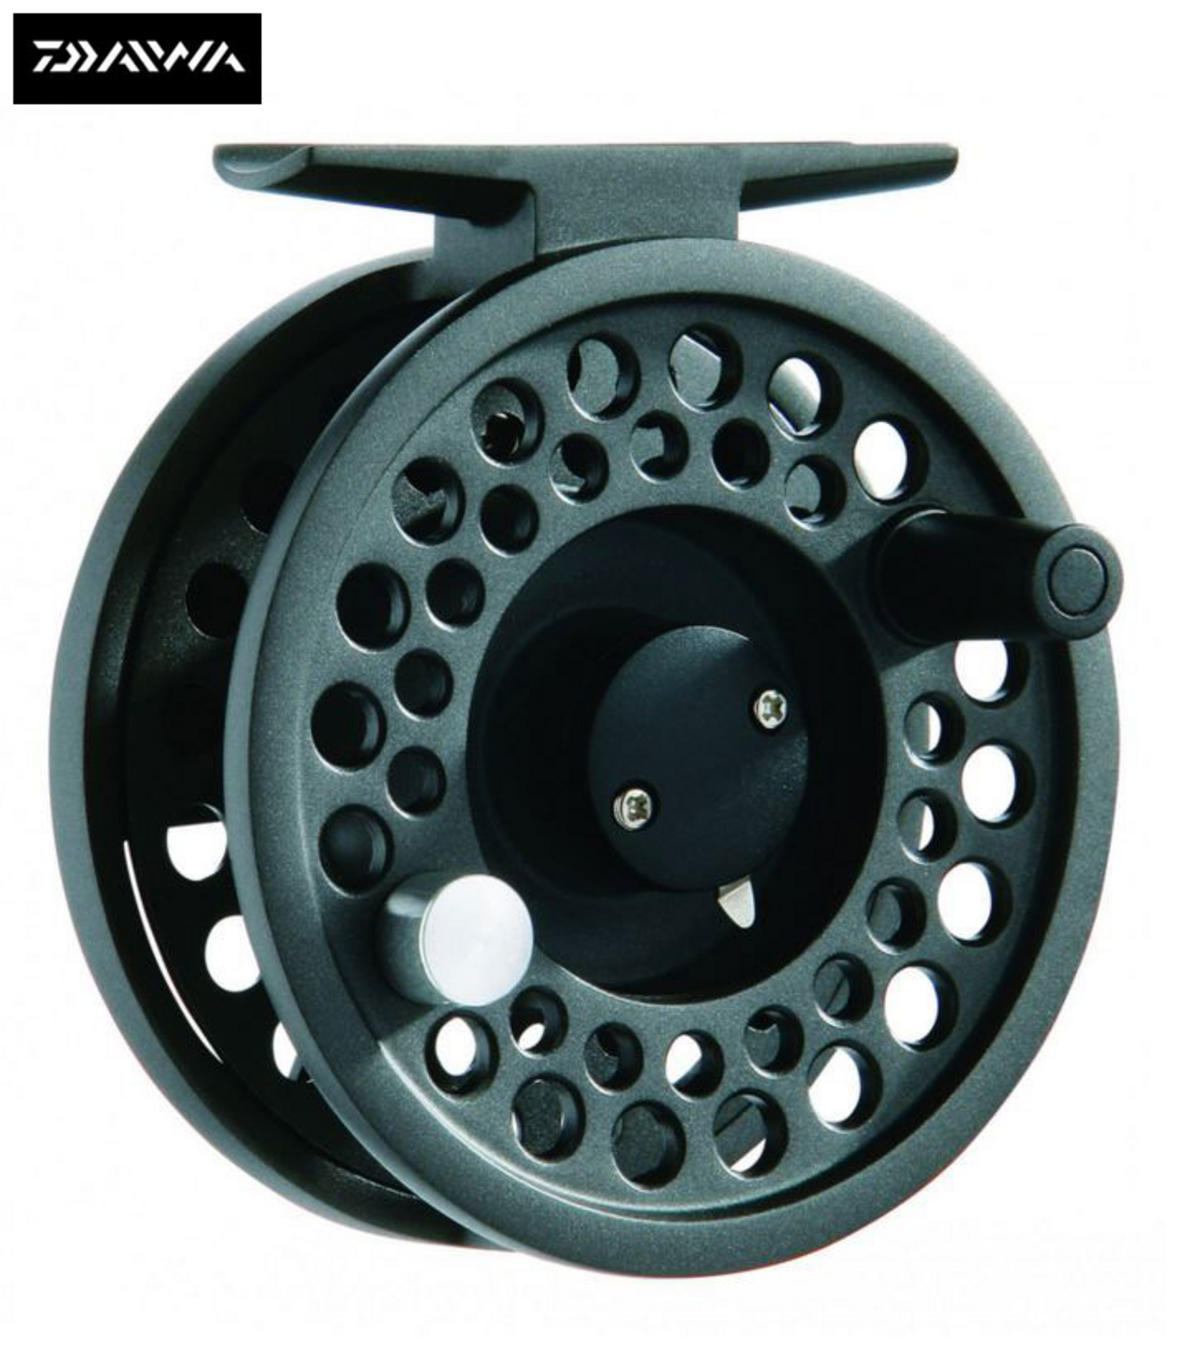 DAIWA WILDERNESS 200 #5-7 FLY REEL Model No WD200